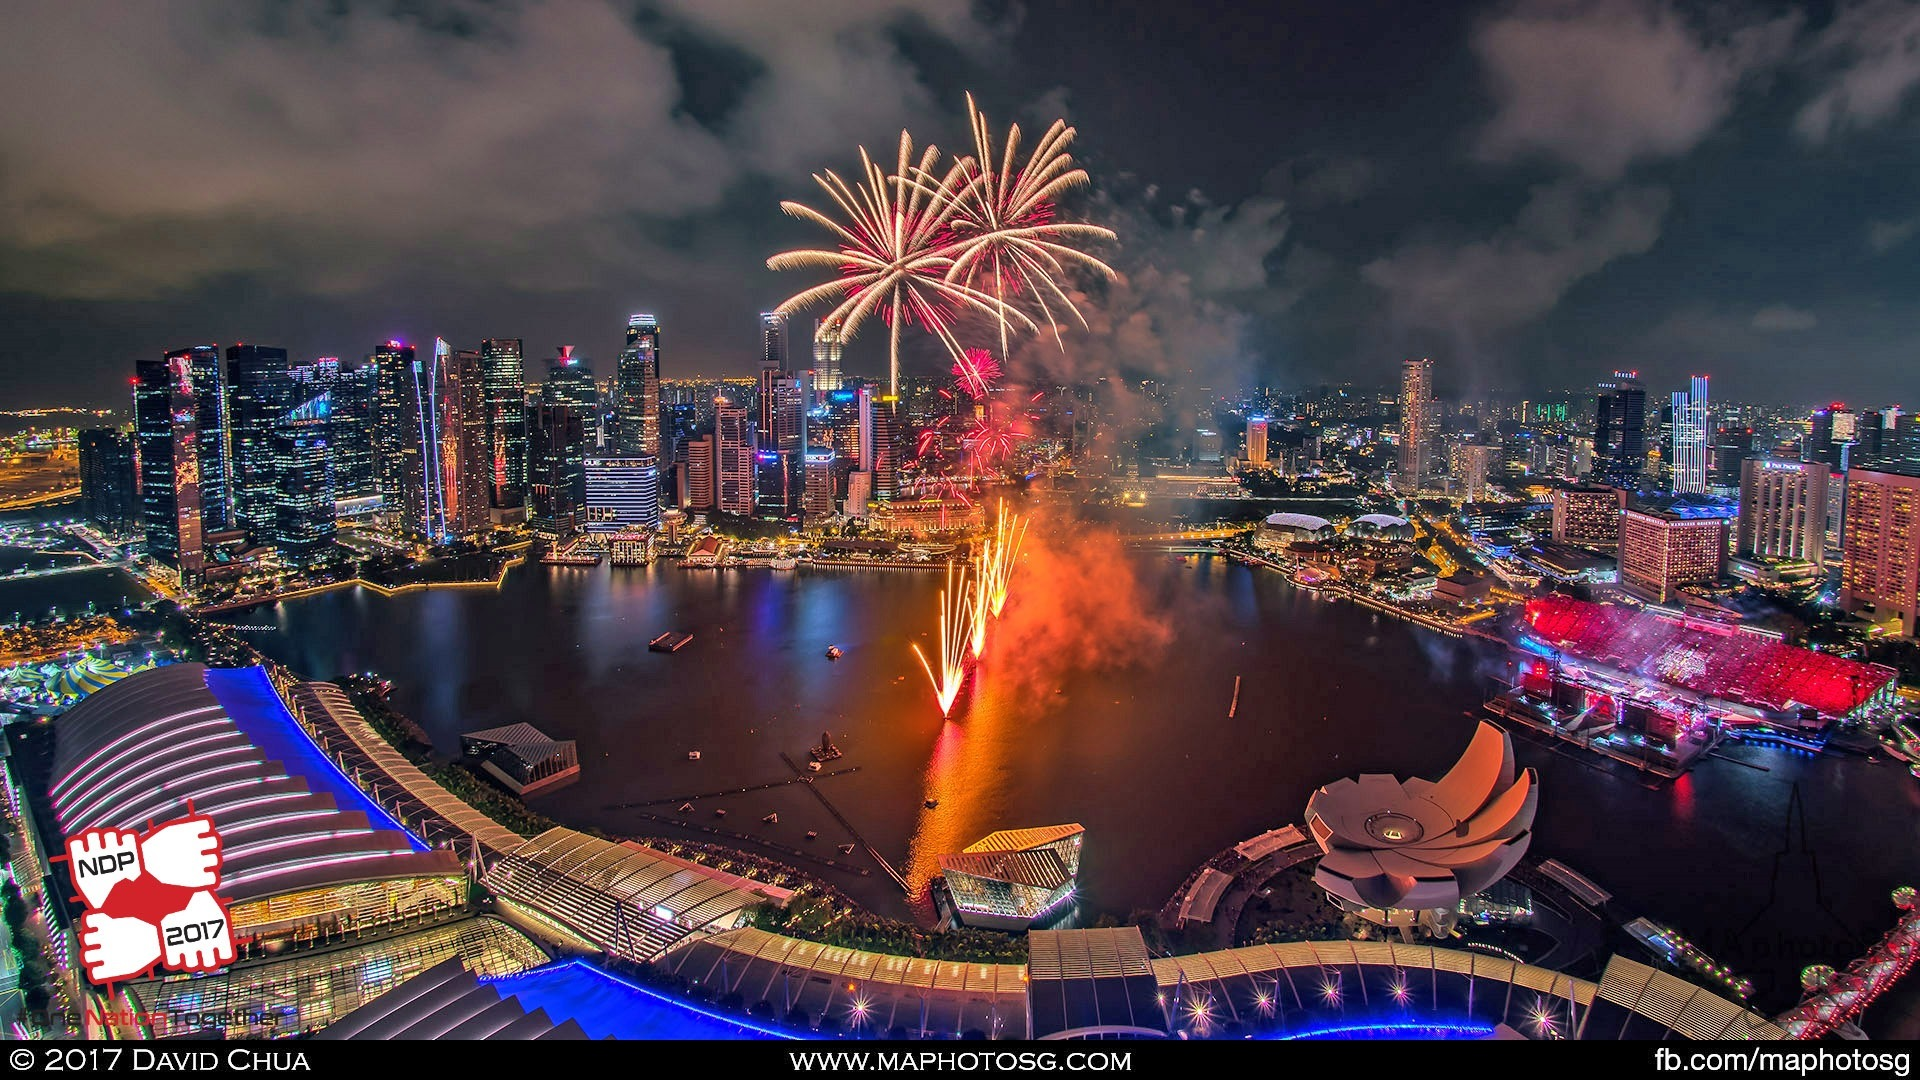 38. Fireworks as viewed from the Marina Bay Sands.